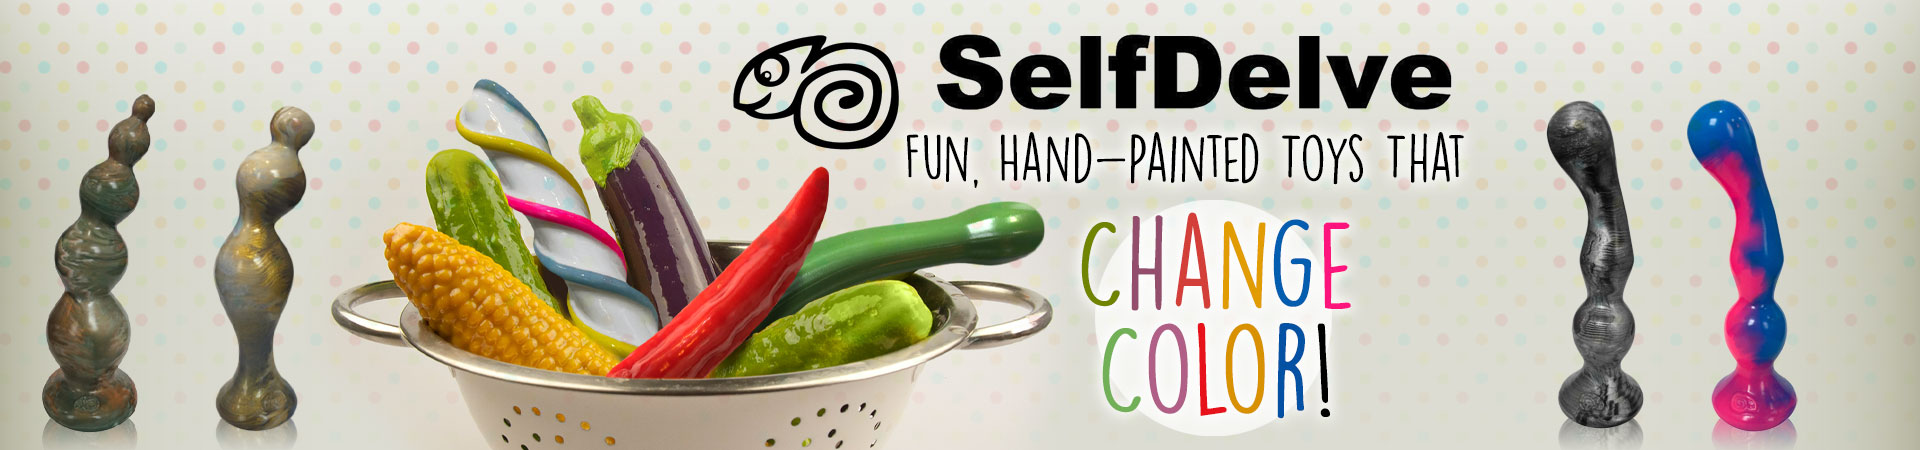 Spotlight on SelfDelve - Fun, Hand-Painted Toys Chat Change Color!